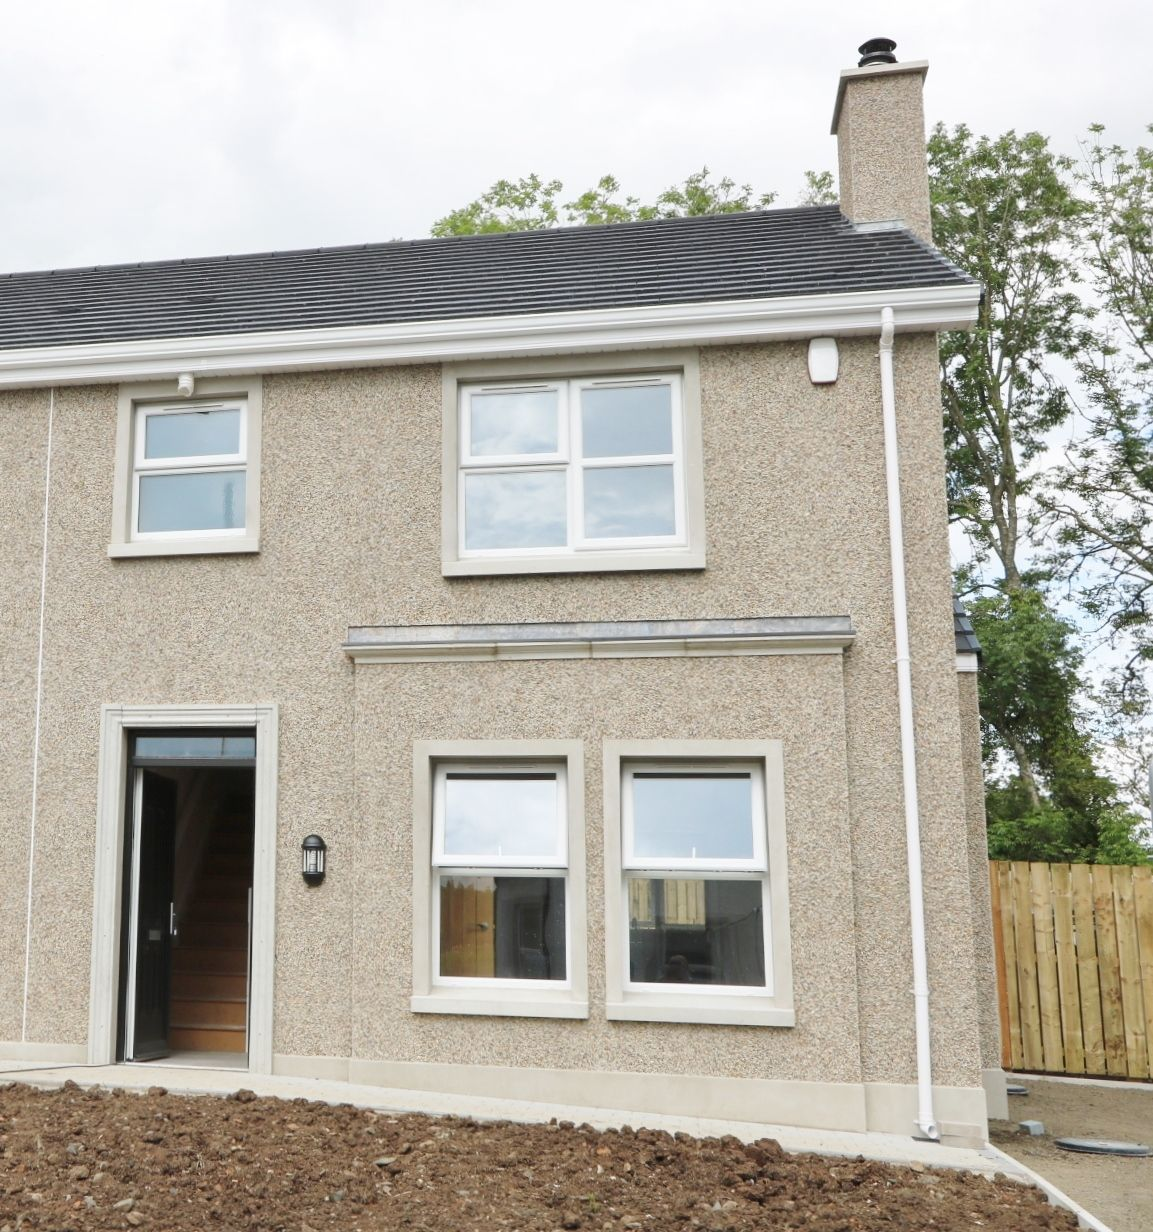 3 bedroom semi-detached house For Sale in Milltown,  Antrim - Photograph 1